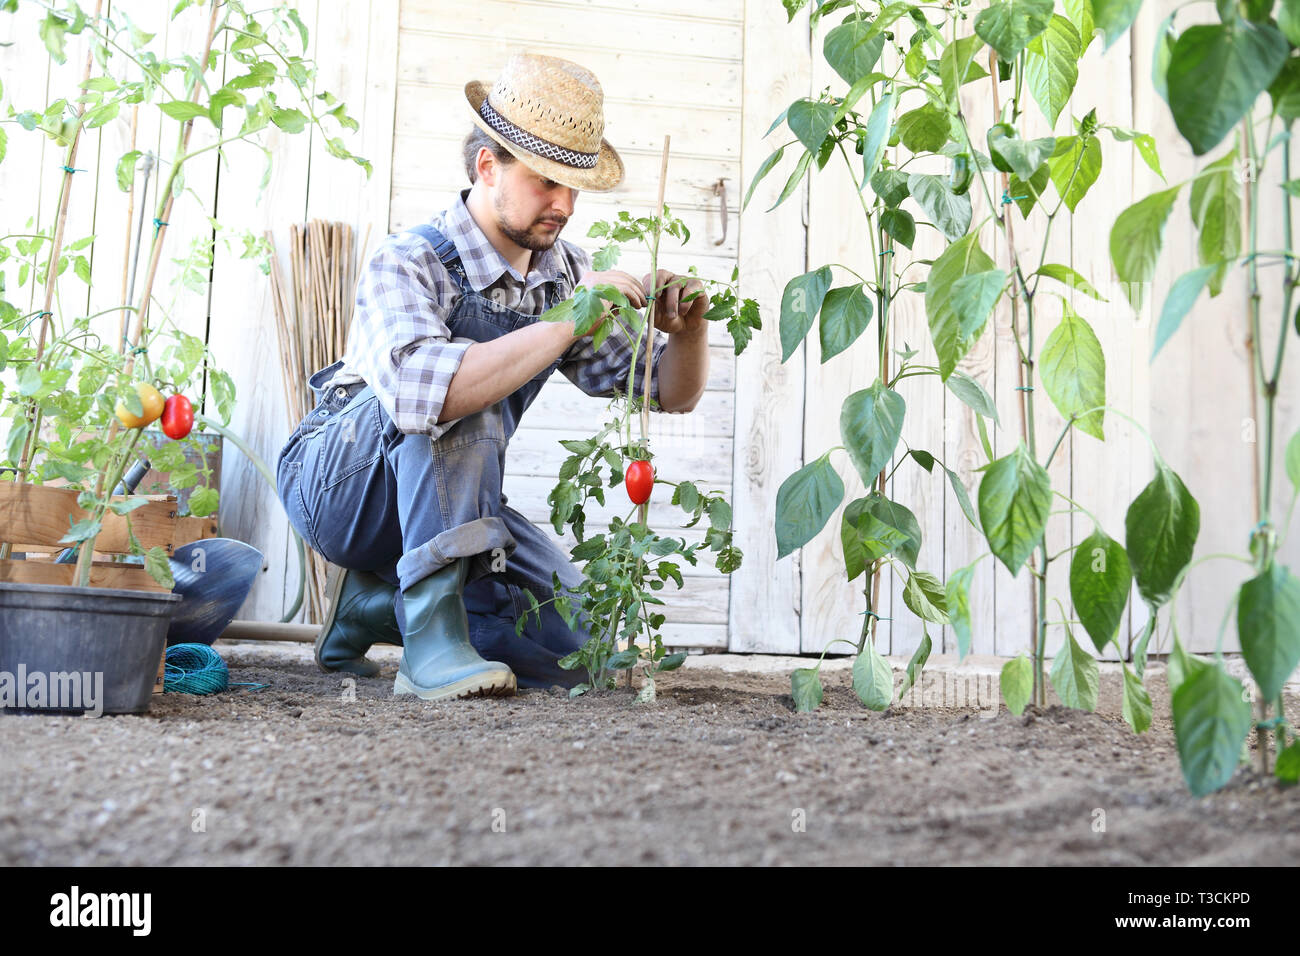 man working in the vegetable garden tie up the tomato plants, take care to make them grow and produce more - Stock Image